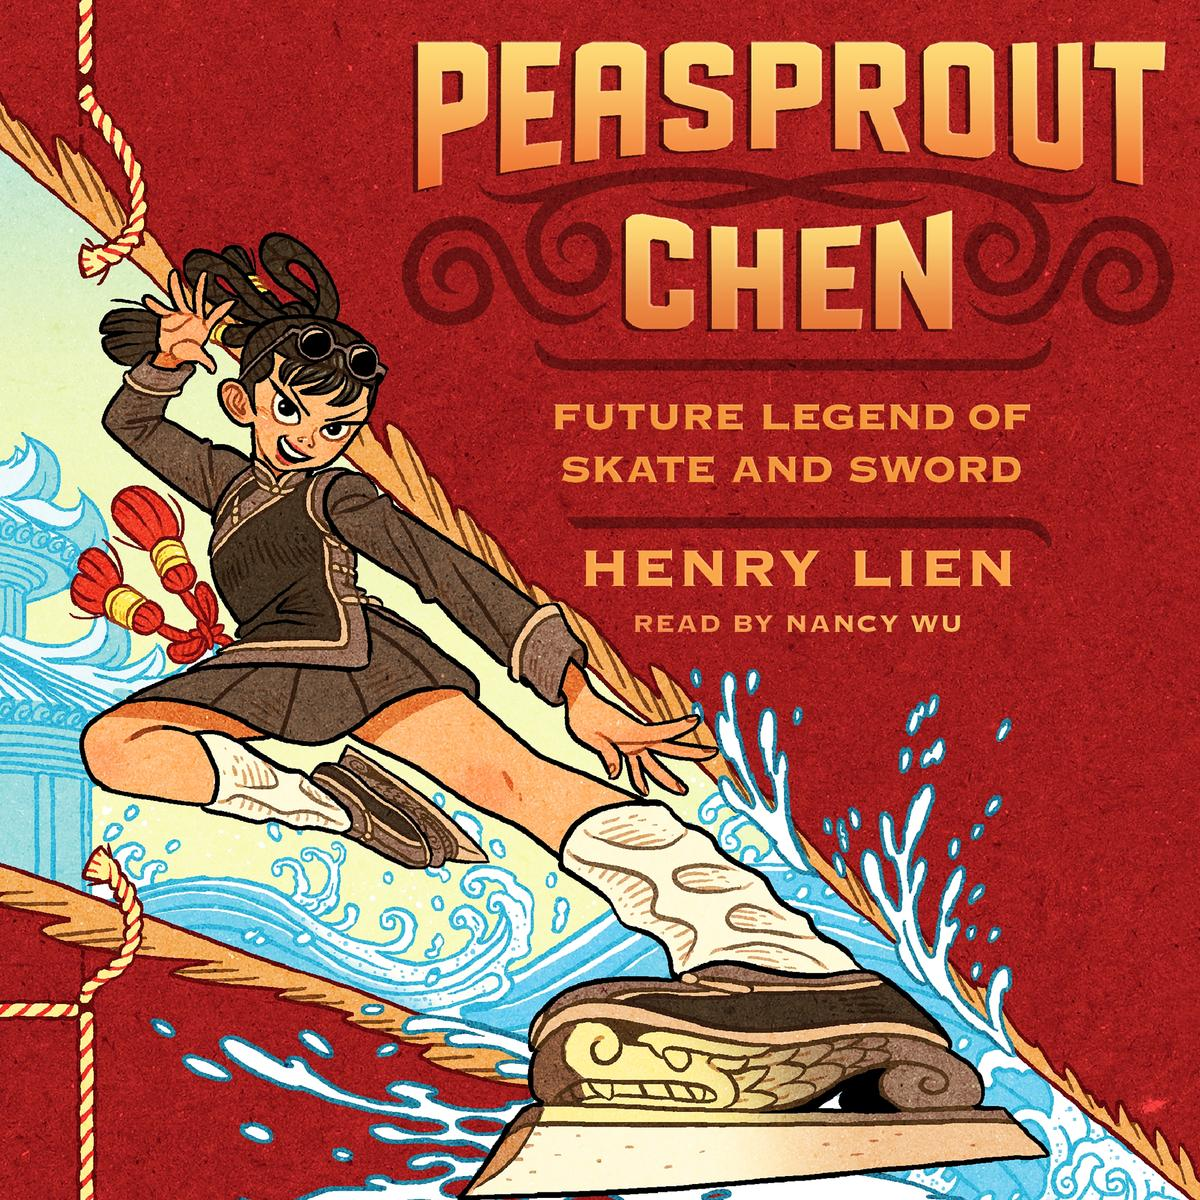 Peasprout Chen, Future Legend of Skate and Sword - Audiobook